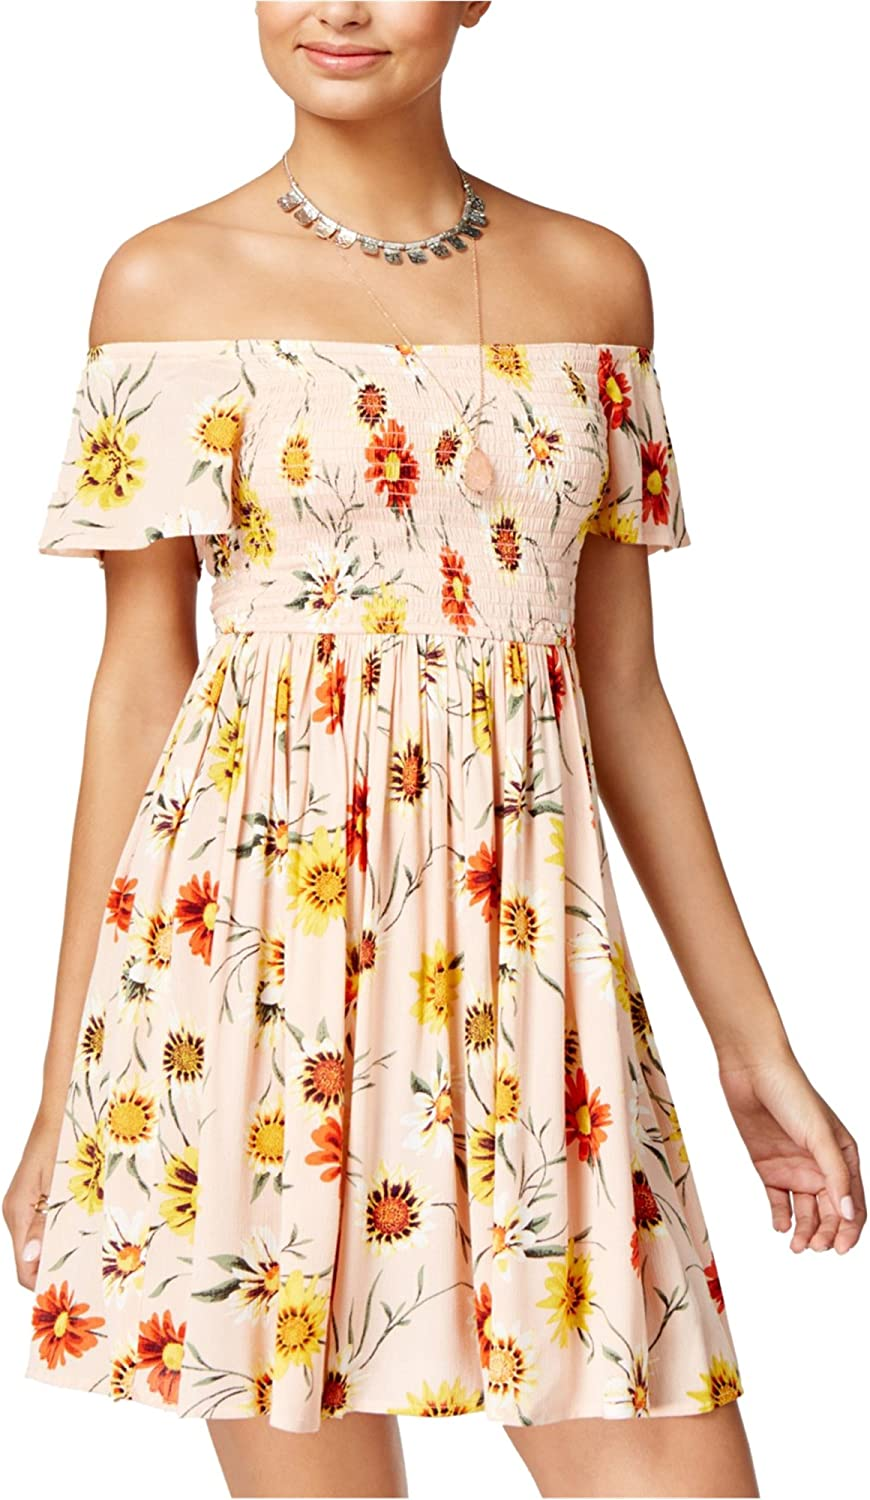 American Rag Womens Printed Fit & Flare Dress